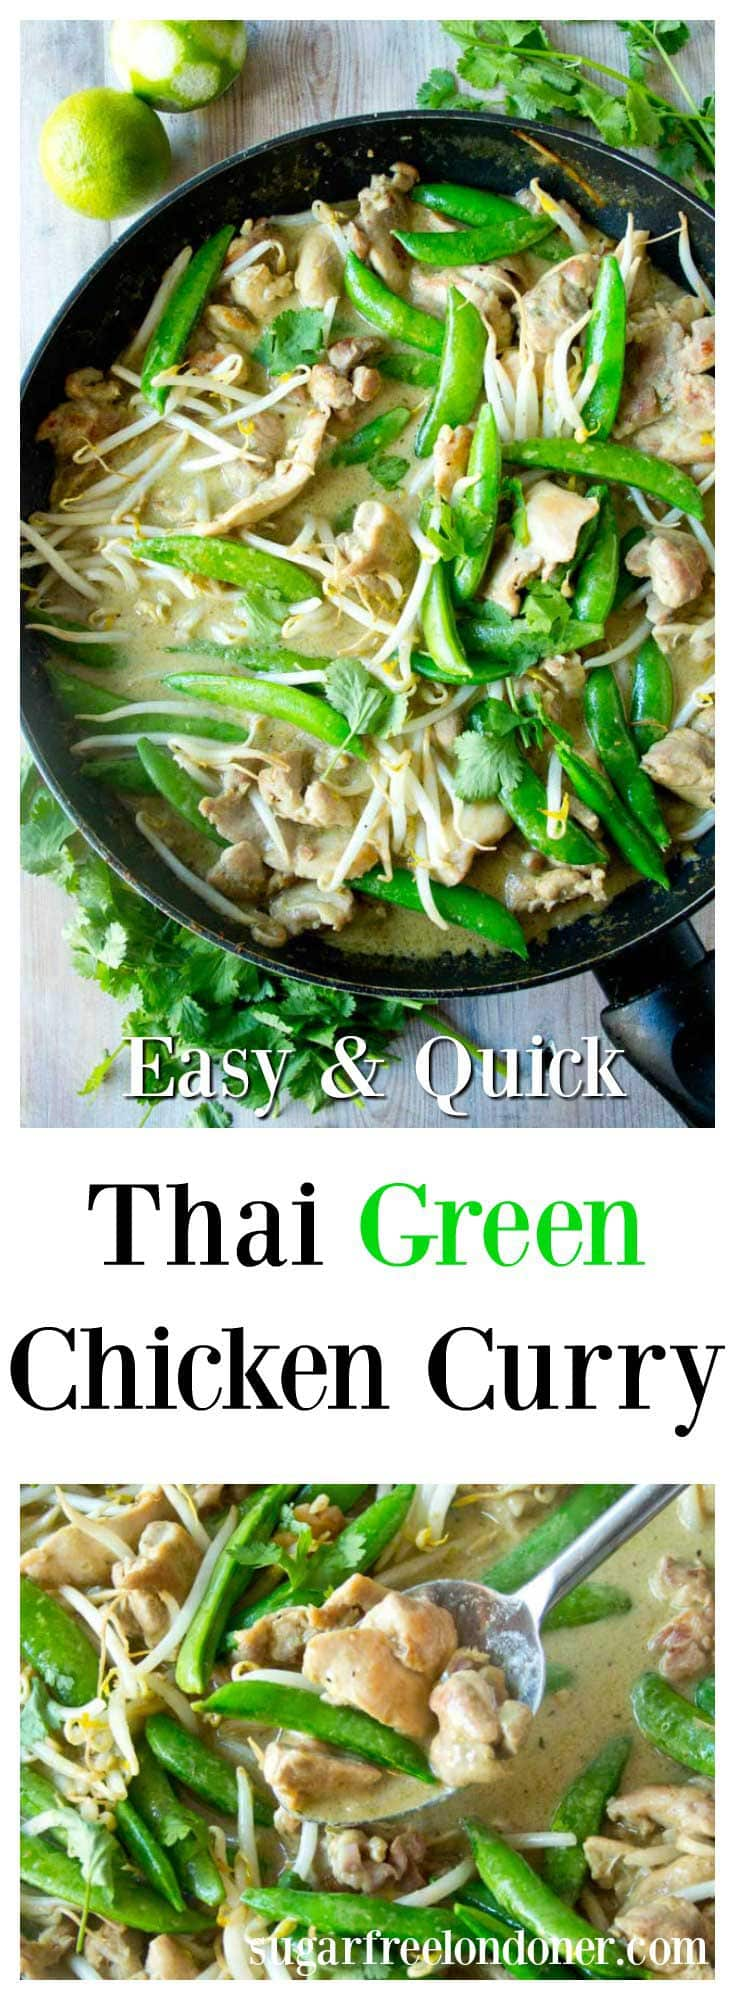 Thai chicken curry is a quick, tasty low carb main meal. This easy green curry recipe is delicious served with cauliflower rice. Ready in only 15 minutes! #greencurry #chickencurry